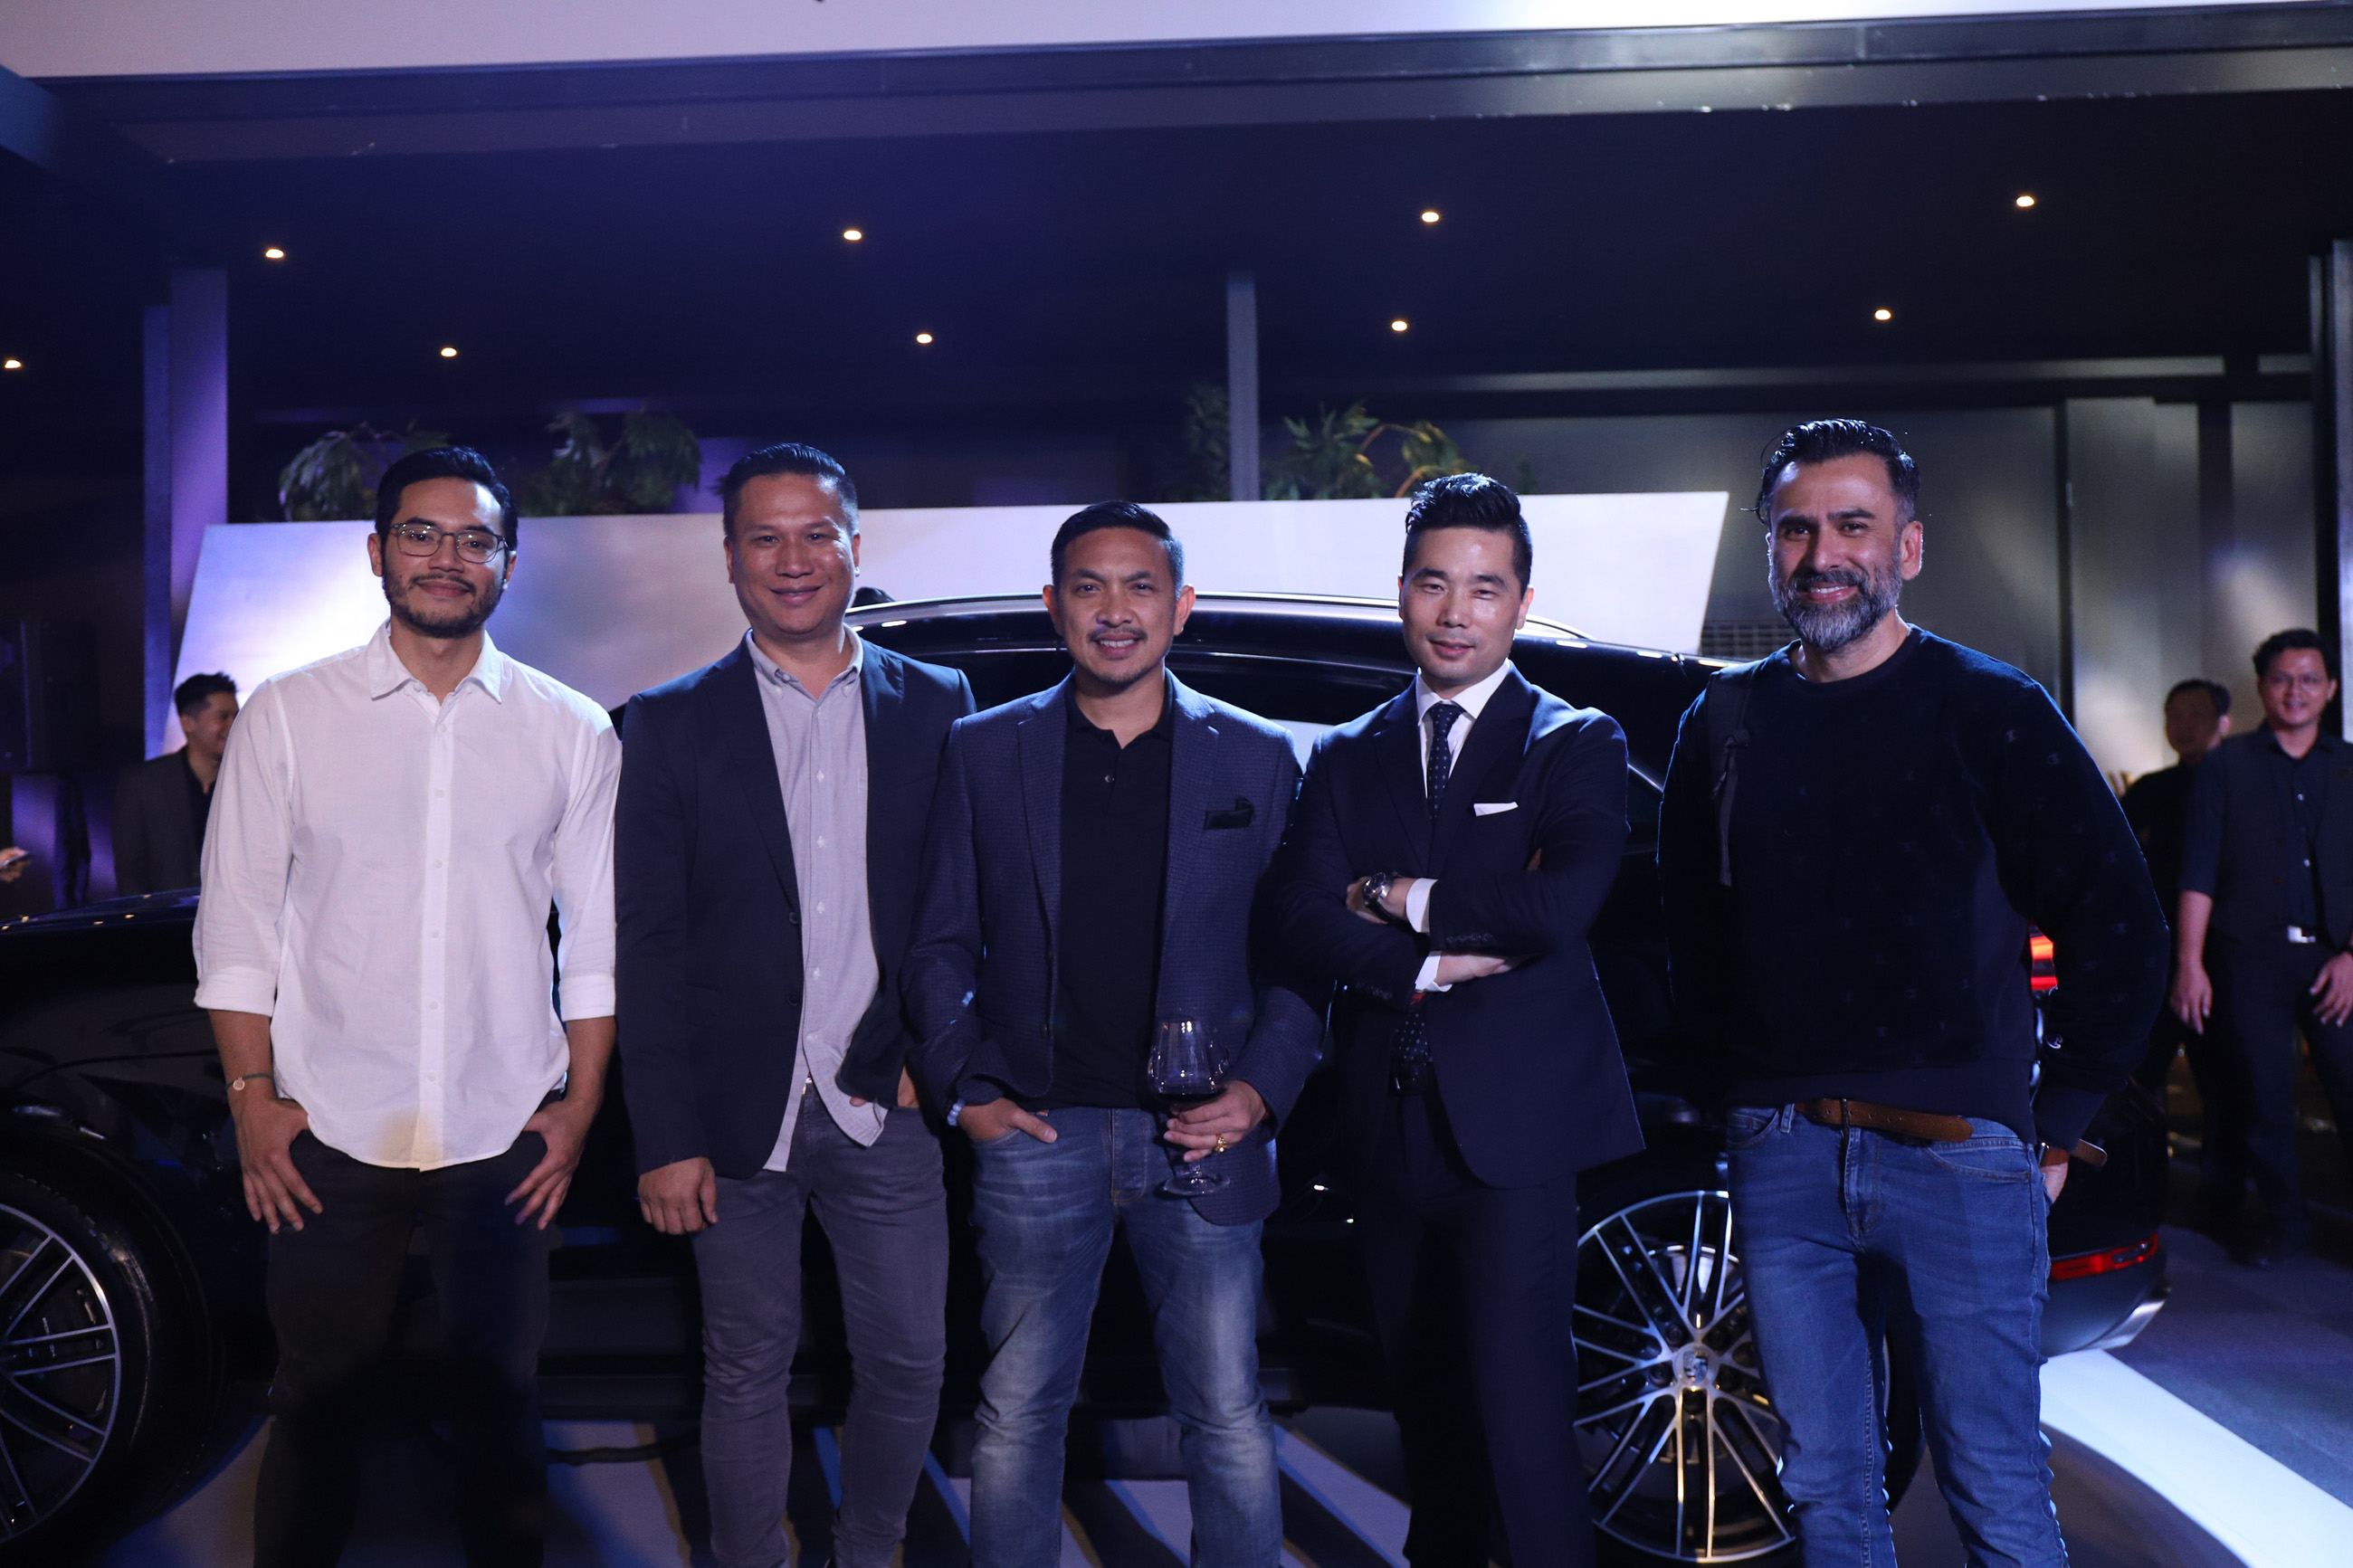 Mr Christoph Choi, Managing Director of Porsche Indonesia (second from right), and Porsche's invited guests (from left to right): Mr Rino Soedarjo, Mr Kicky Alexander, Mr Tommy Siahaan and Mr Jeremy Thomas